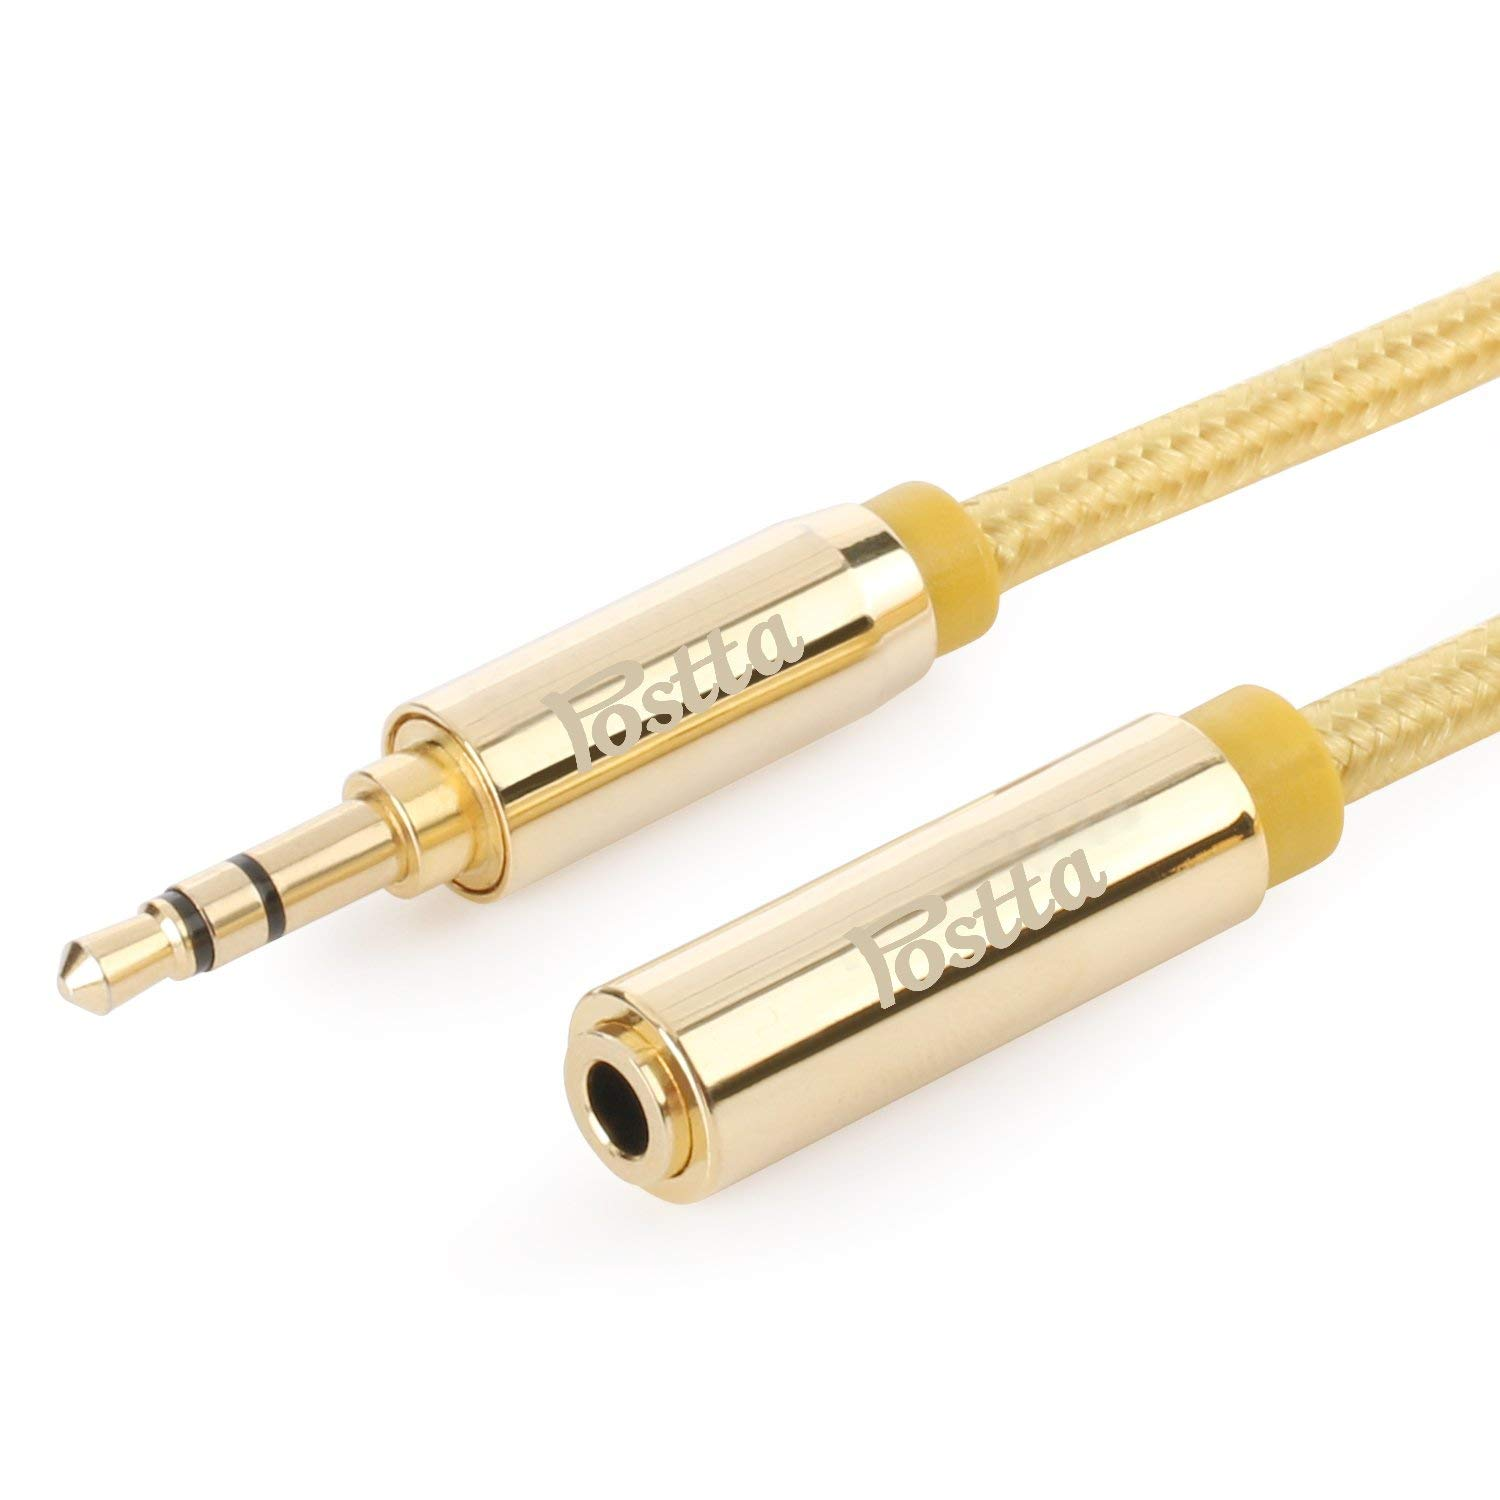 Postta 3.5mm Stereo Audio Extension Cable (10 Feet) Male to Female Gold Plated AUX Cable with Premium Matel Shell for Smartphones,Tablets,Mp3 Player,Speaker and more Devices-1 Pack(Golden)